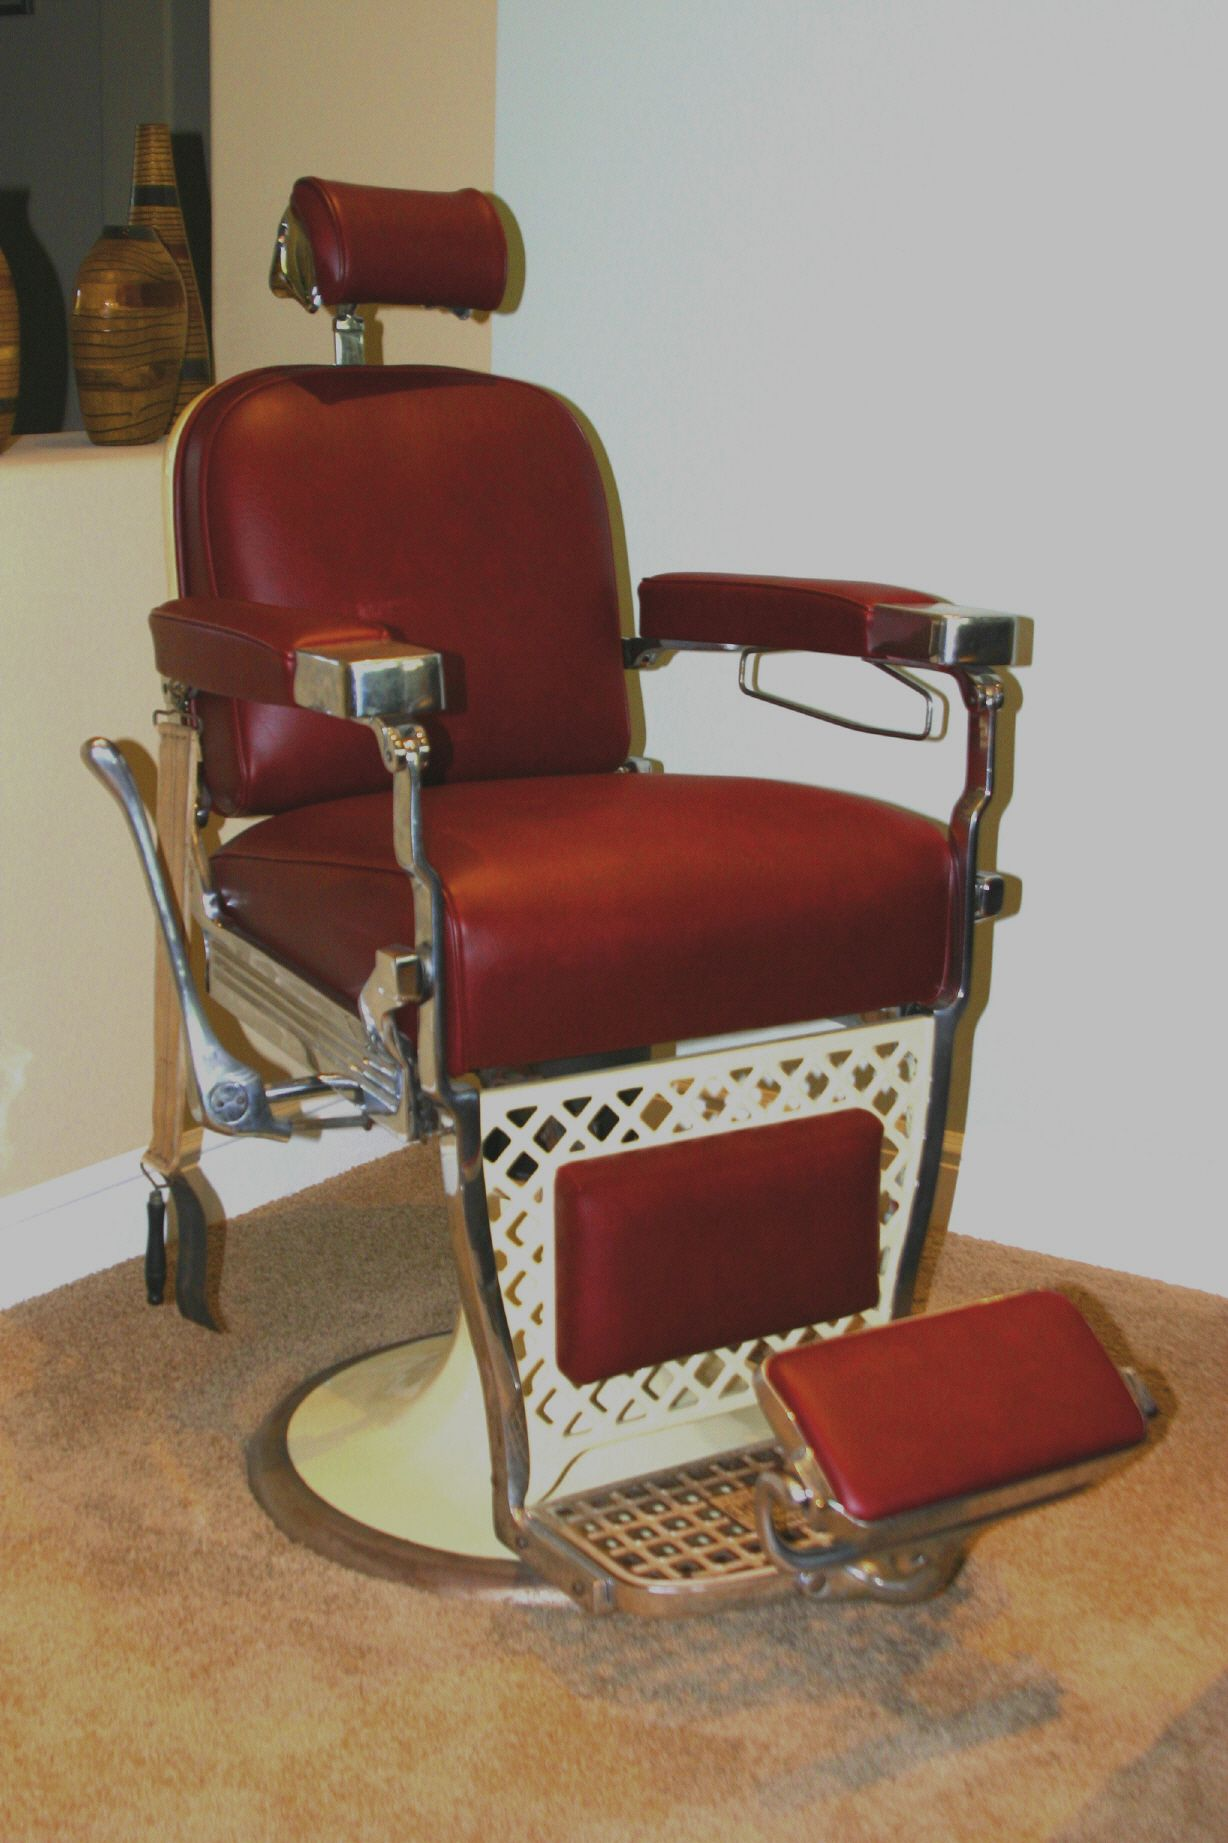 mobile barber chair victorian style chairs cheap antique http coastersfurniture org shabby